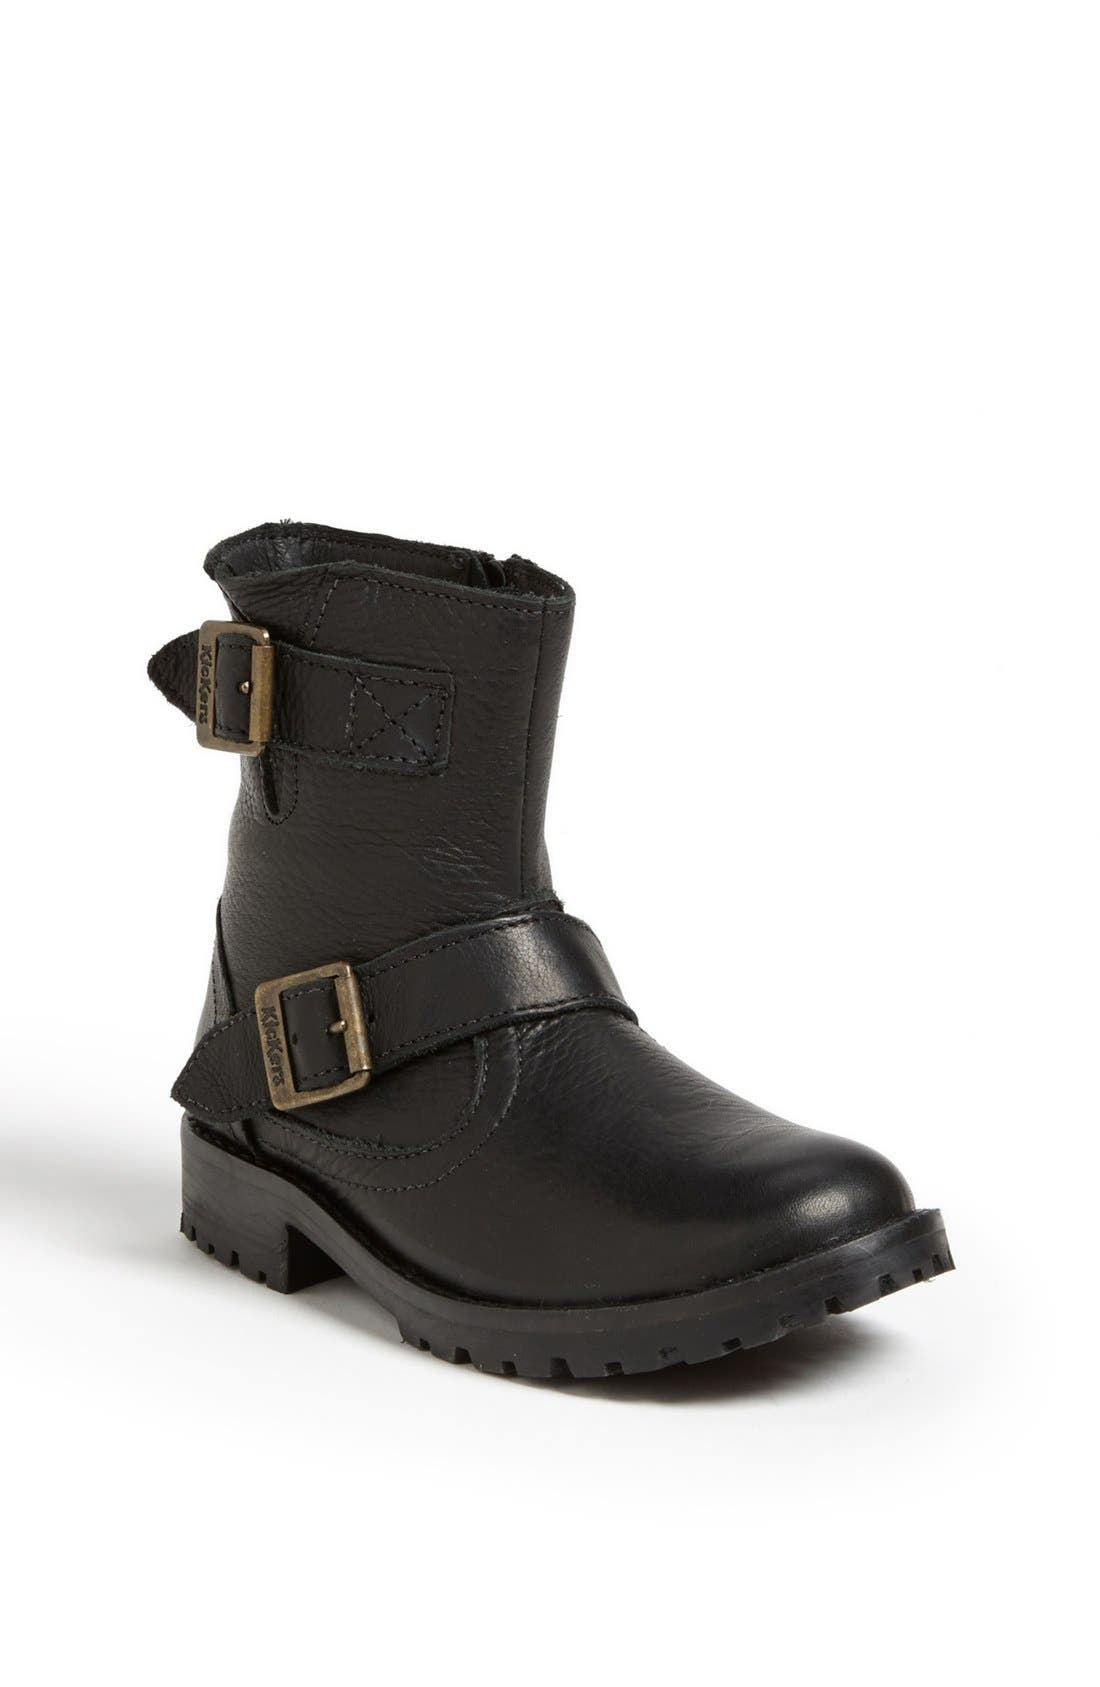 Alternate Image 1 Selected - Kickers 'Gecko' Boot (Toddler, Little Kid & Big Kid)